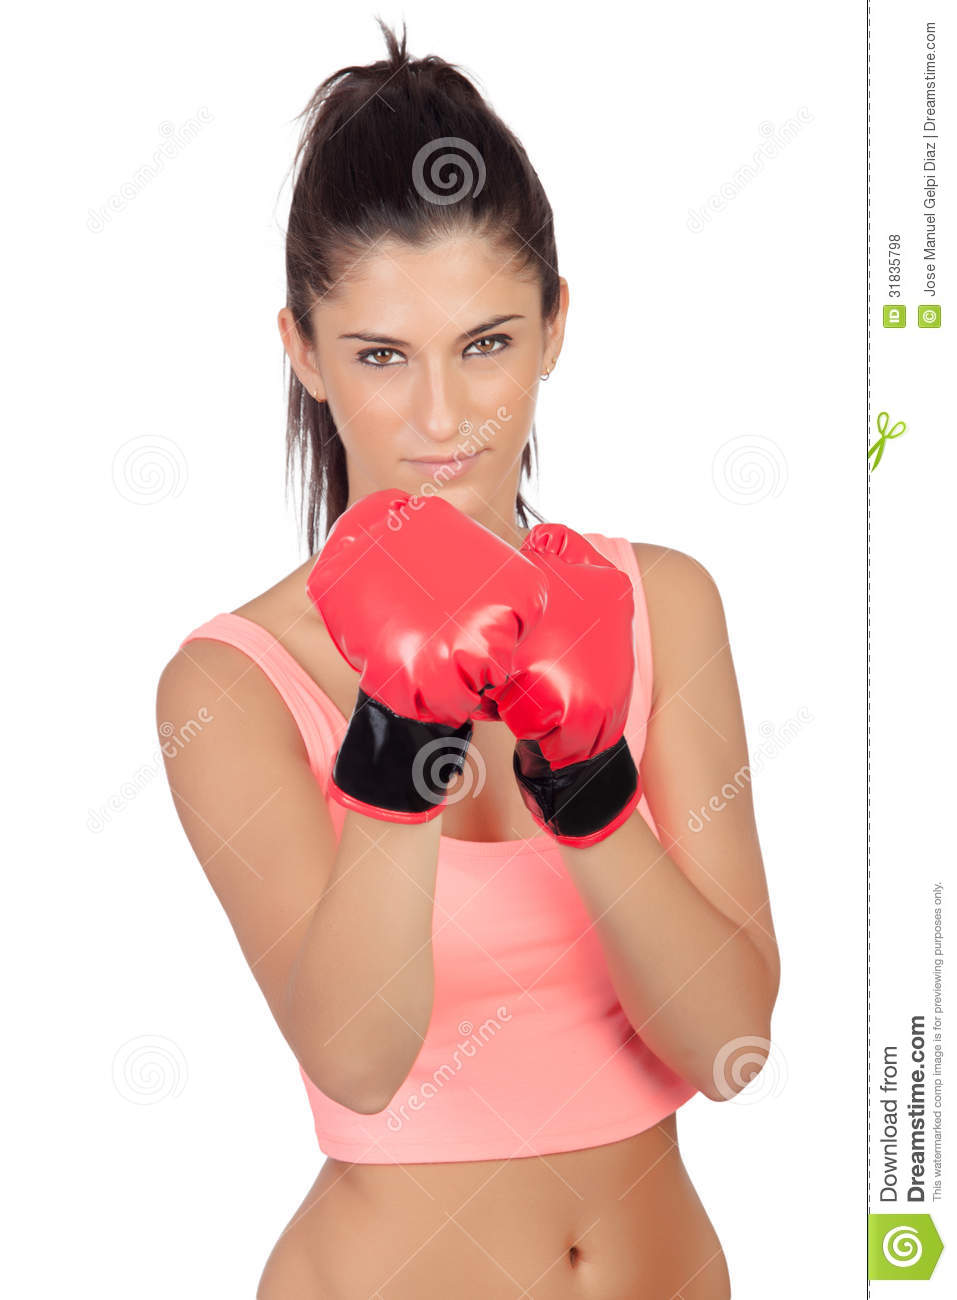 fille attirante avec des gants de boxe photo stock image. Black Bedroom Furniture Sets. Home Design Ideas